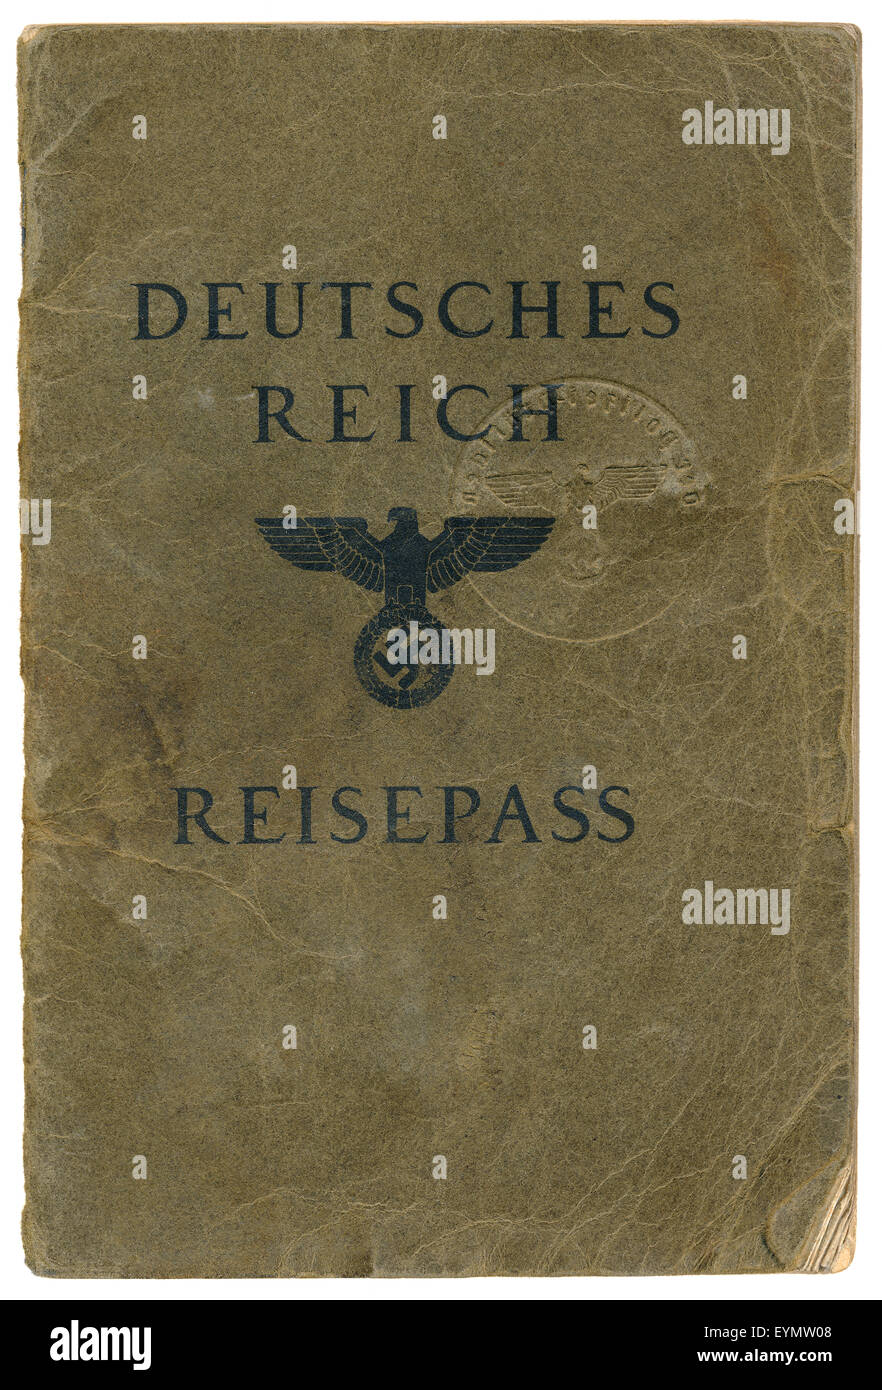 Old passport, c. 1937, German Empire, Europe - Stock Image